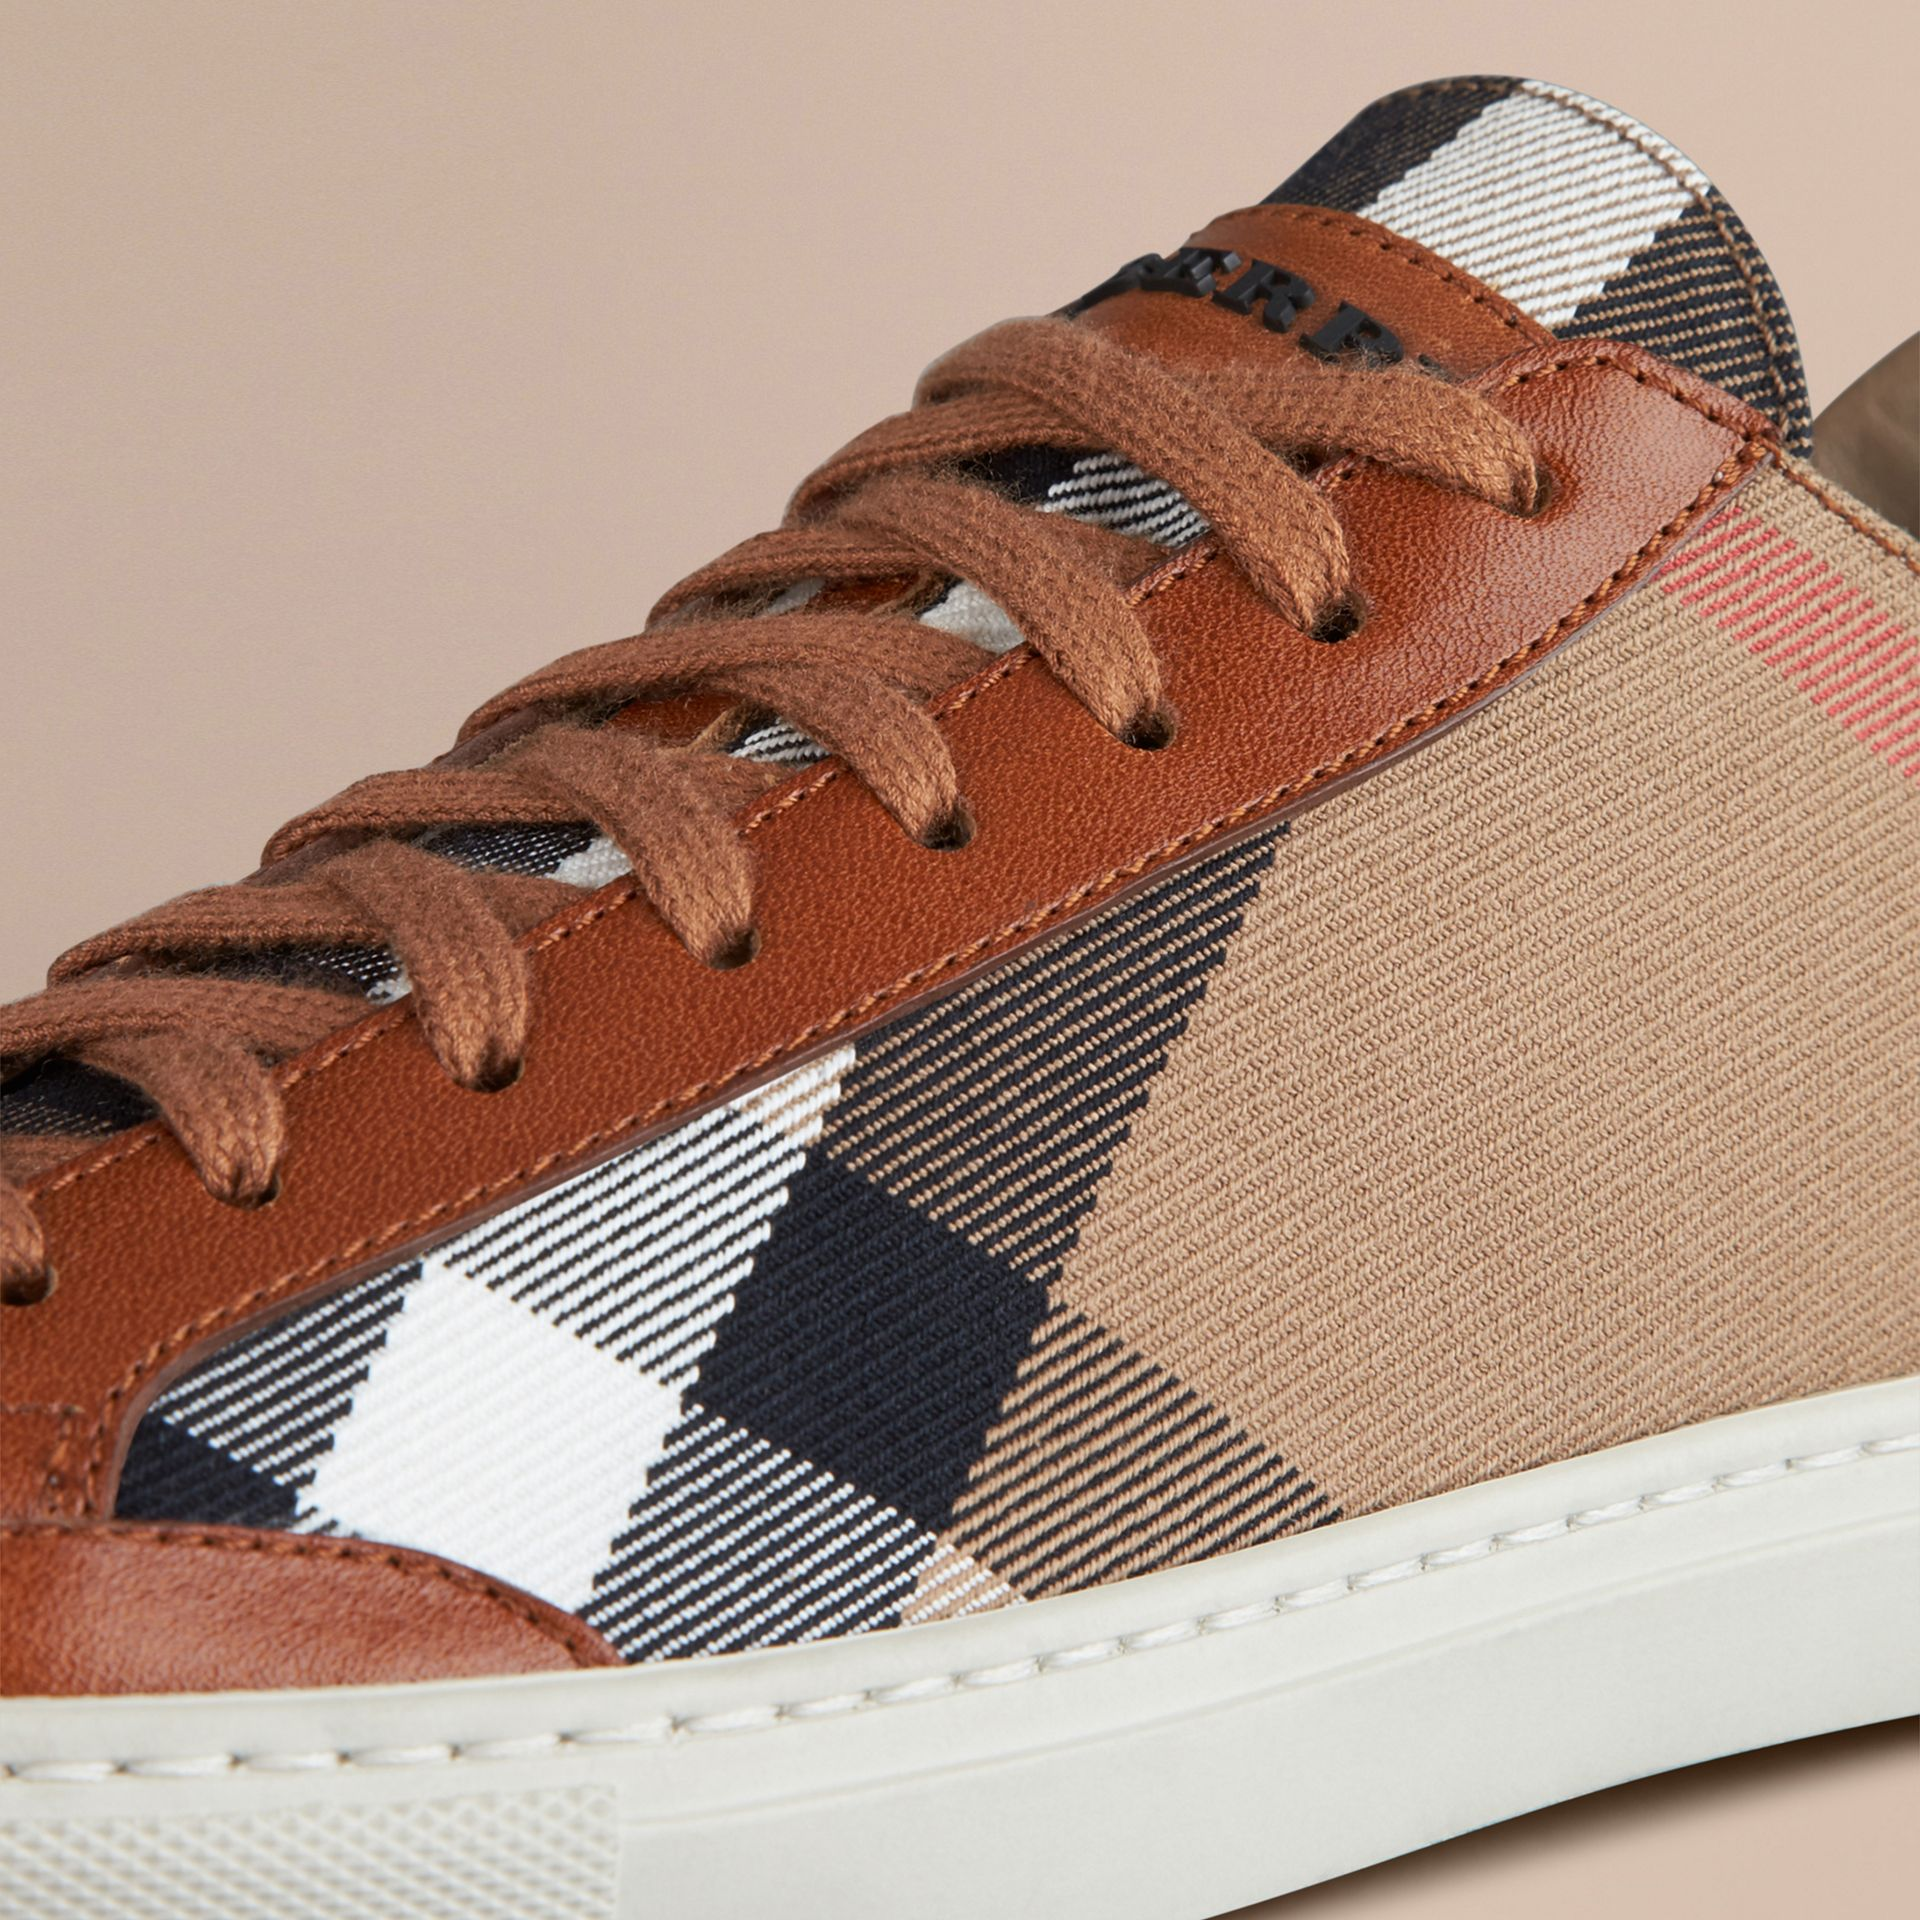 Marroncino Sneakers in tela House check - immagine della galleria 5